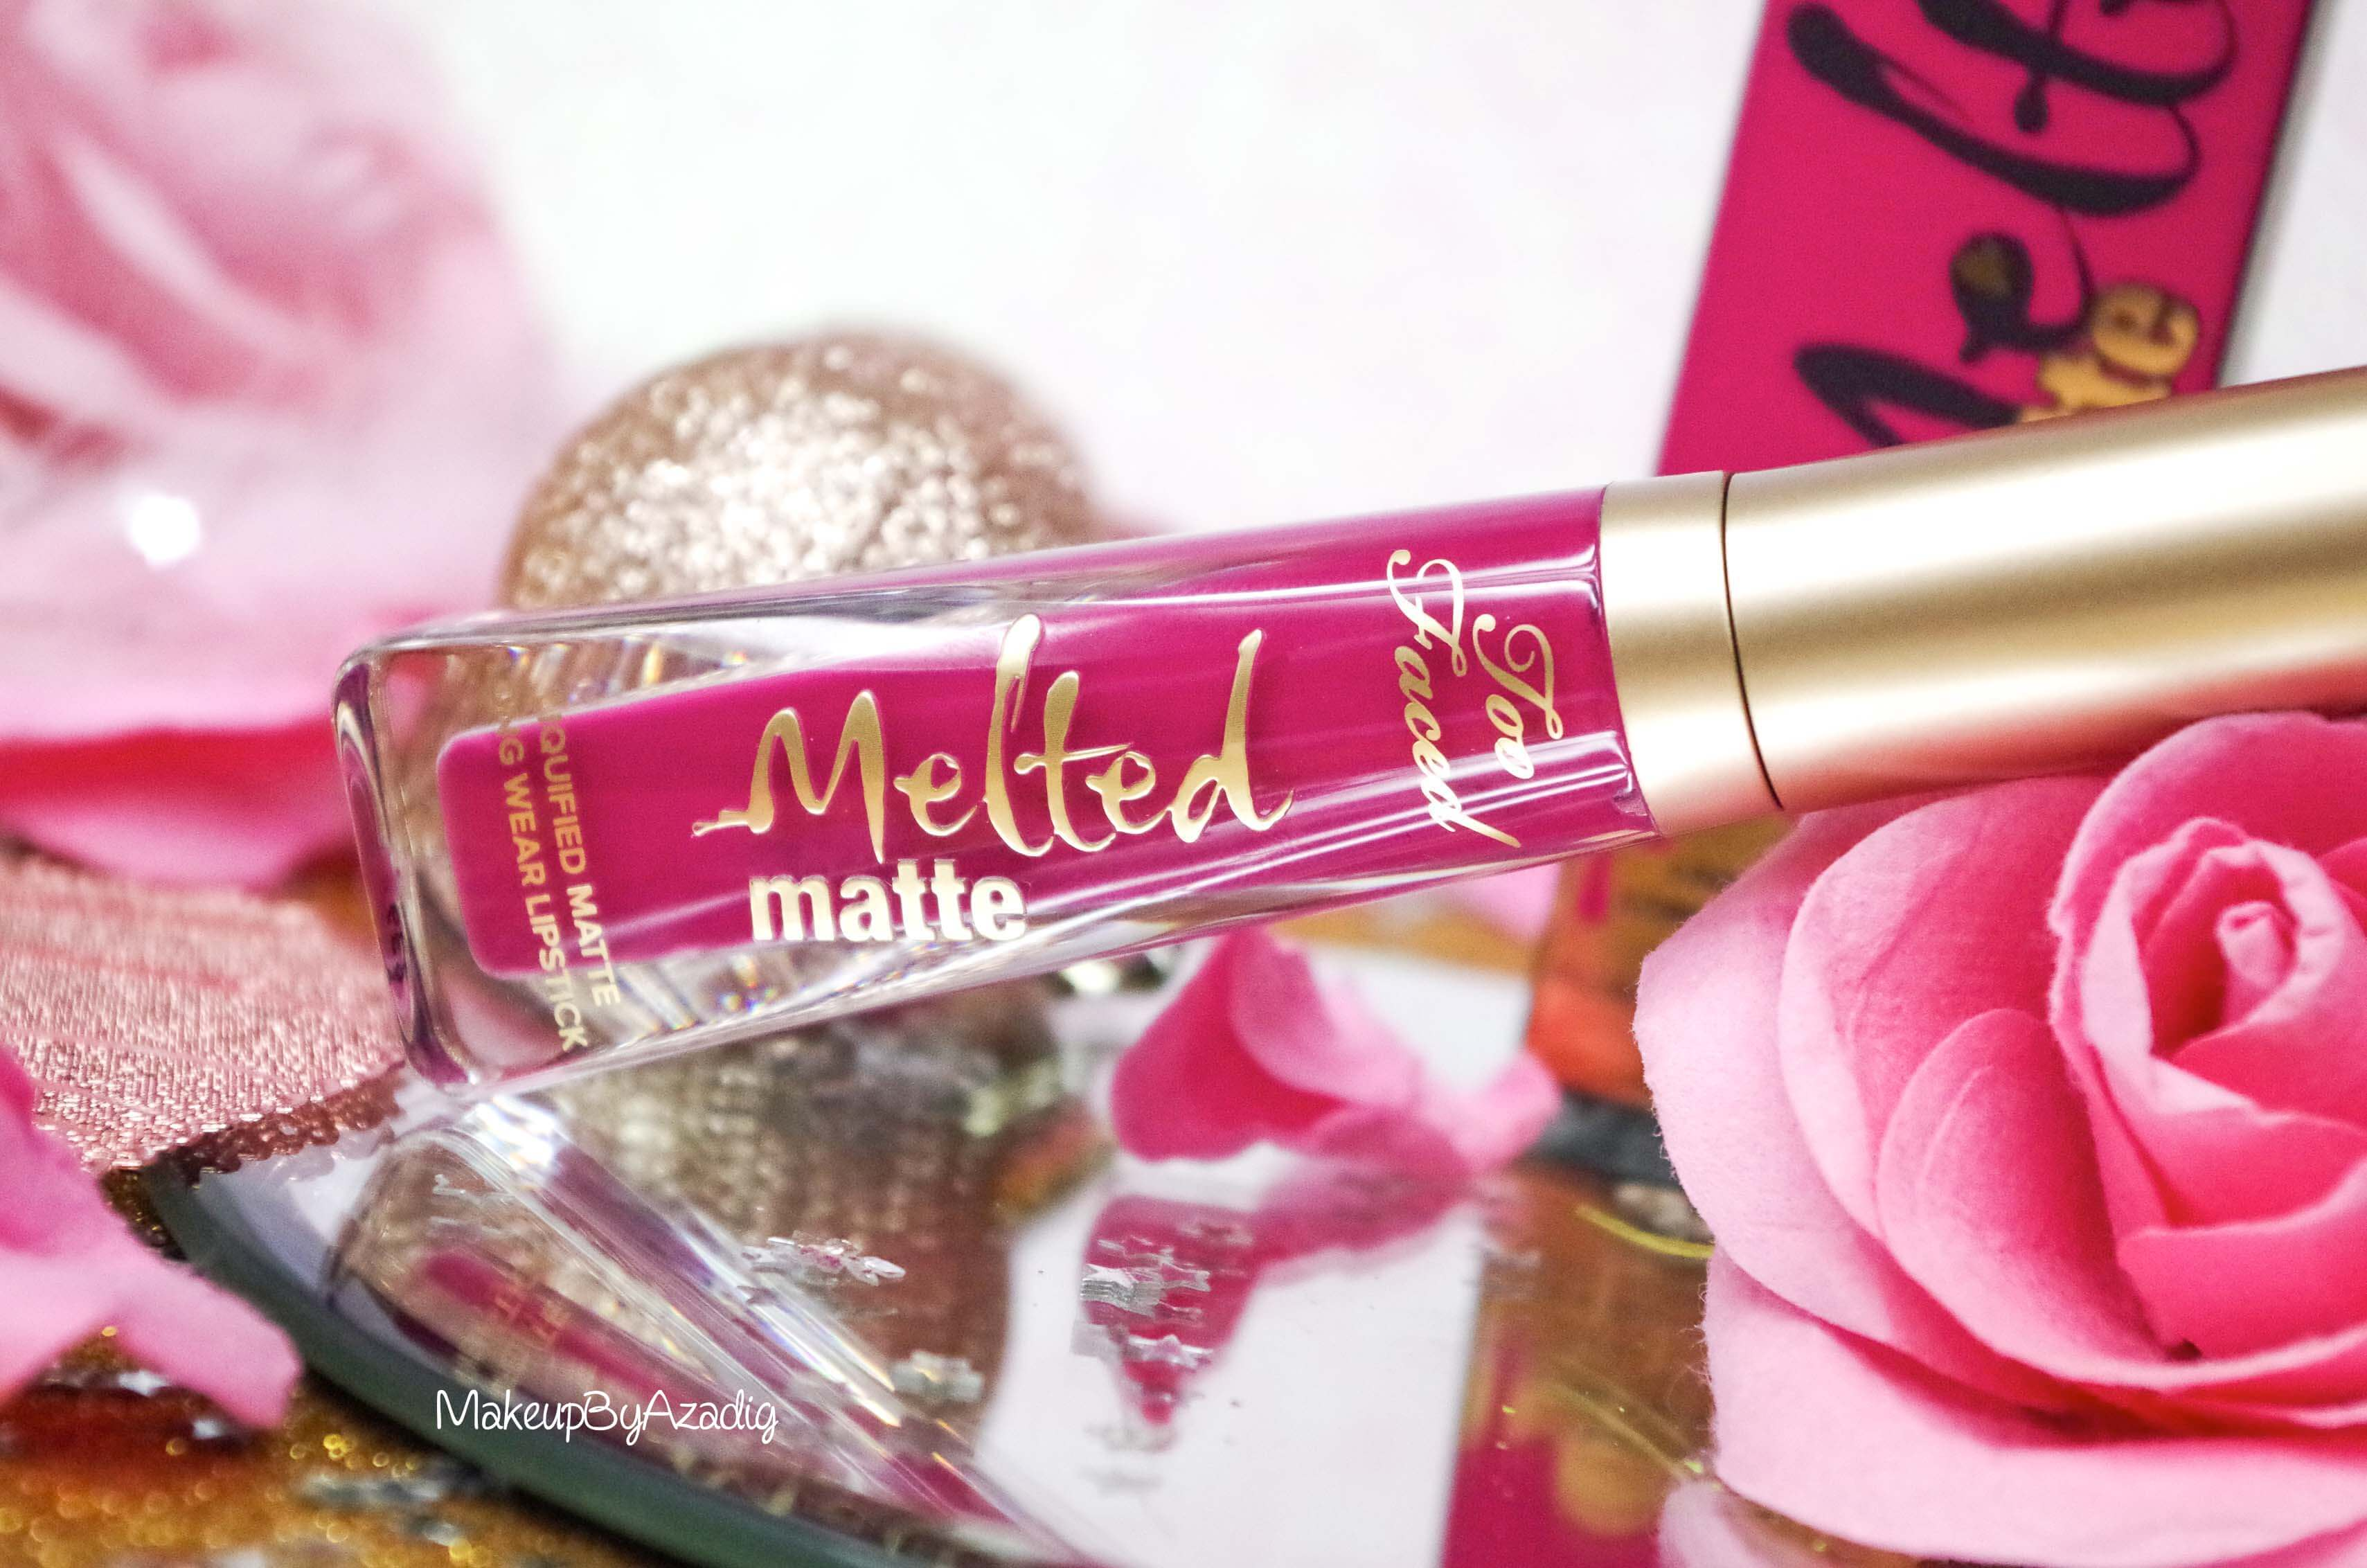 makeupbyazadig-melted-matte-queenb-bendandsnap-influencer-too-faced-rouge-levres-revue-avis-prix-sephora-paris-blog-liquide-dream